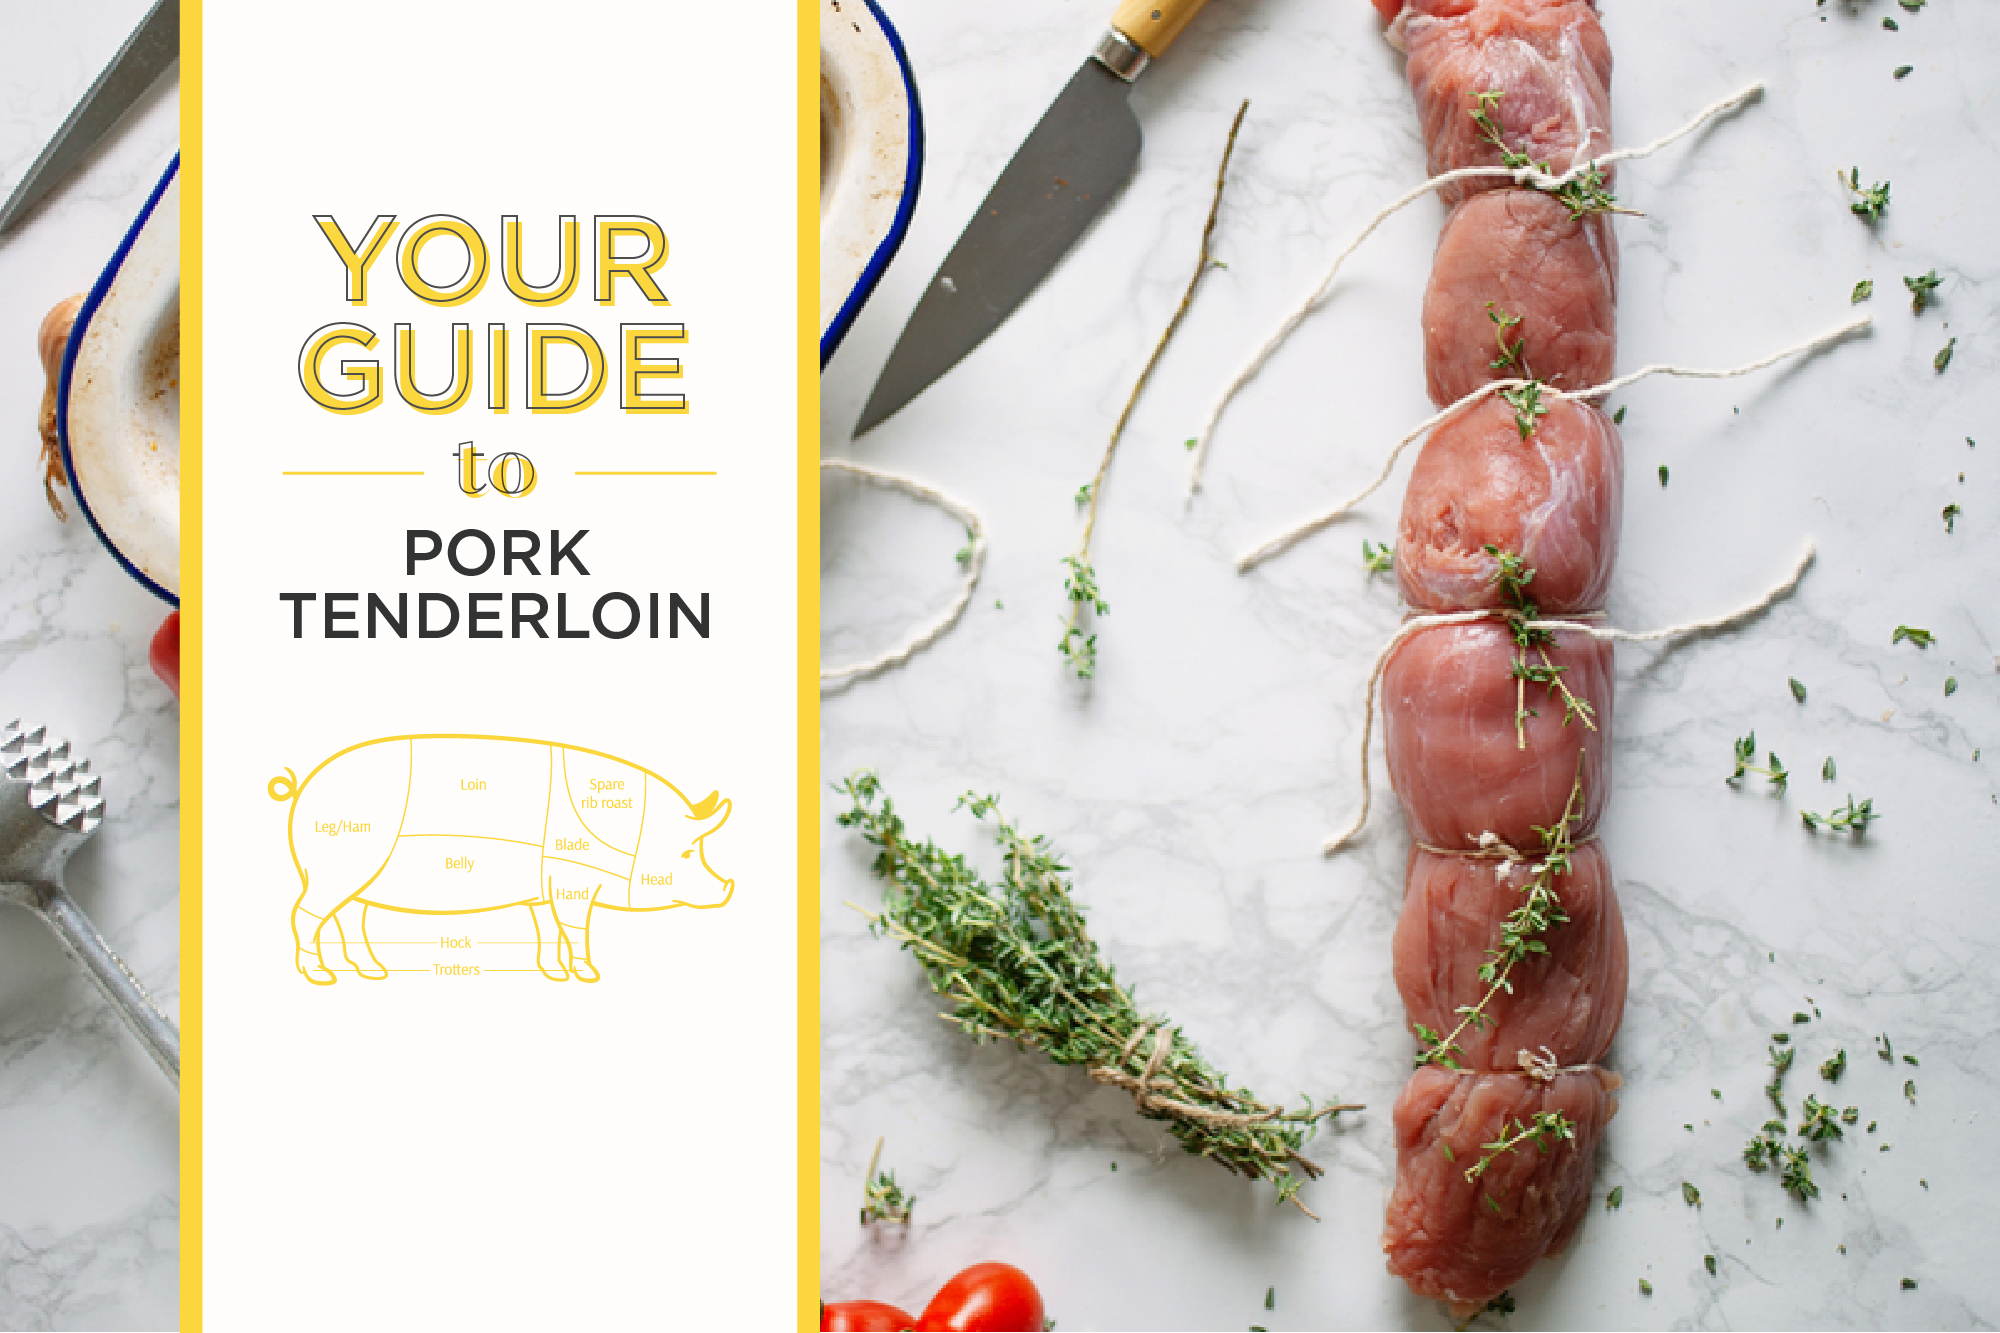 Everything About Pork Tenderloin: How to Buy It and Cook It